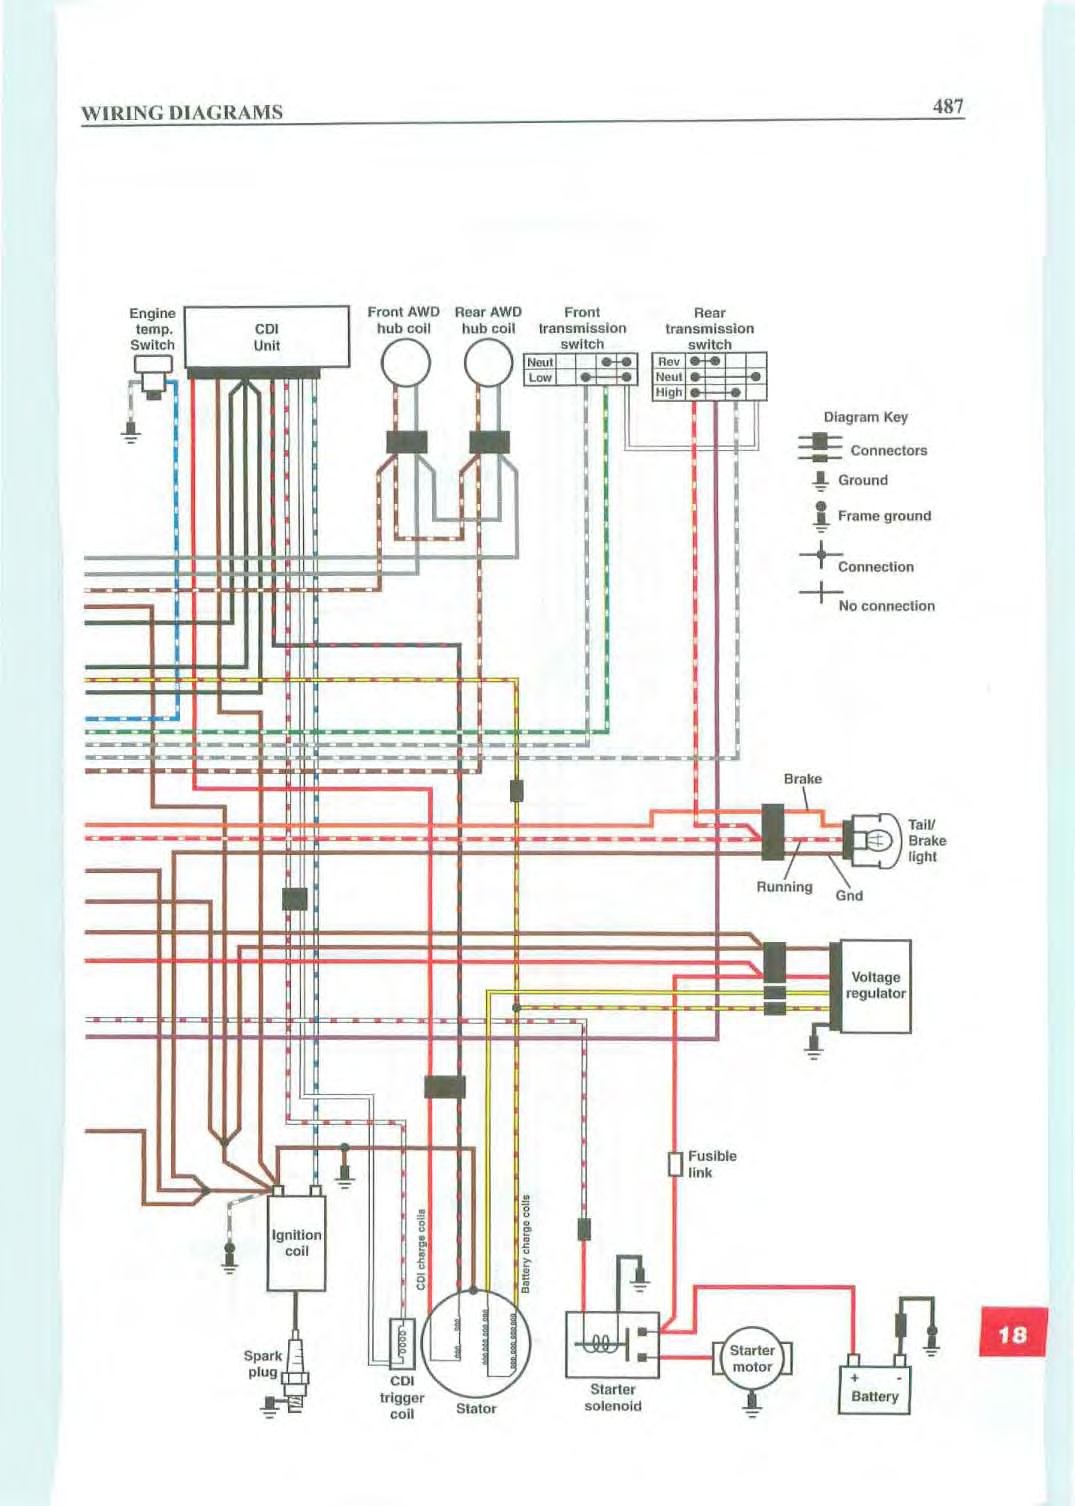 wiring diagram 2000 polaris scrambler 4x4 polaris sportsman 500 wiring diagram key beat cetar  polaris sportsman 500 wiring diagram